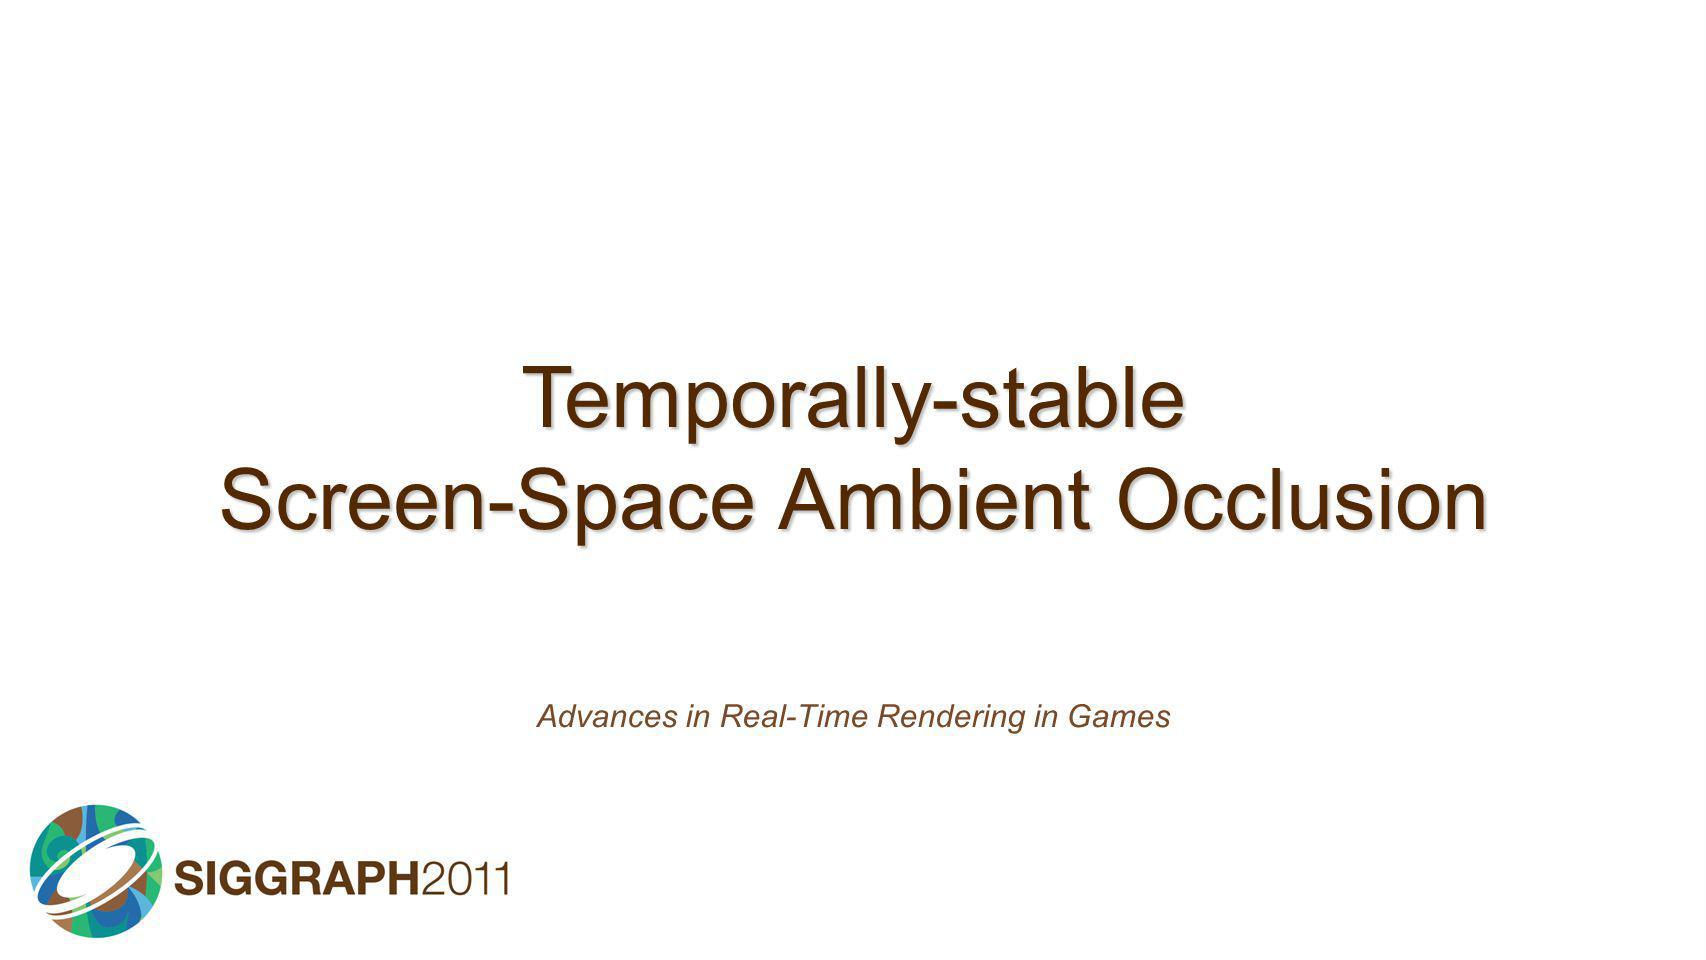 Temporally-stable Screen-Space Ambient Occlusion